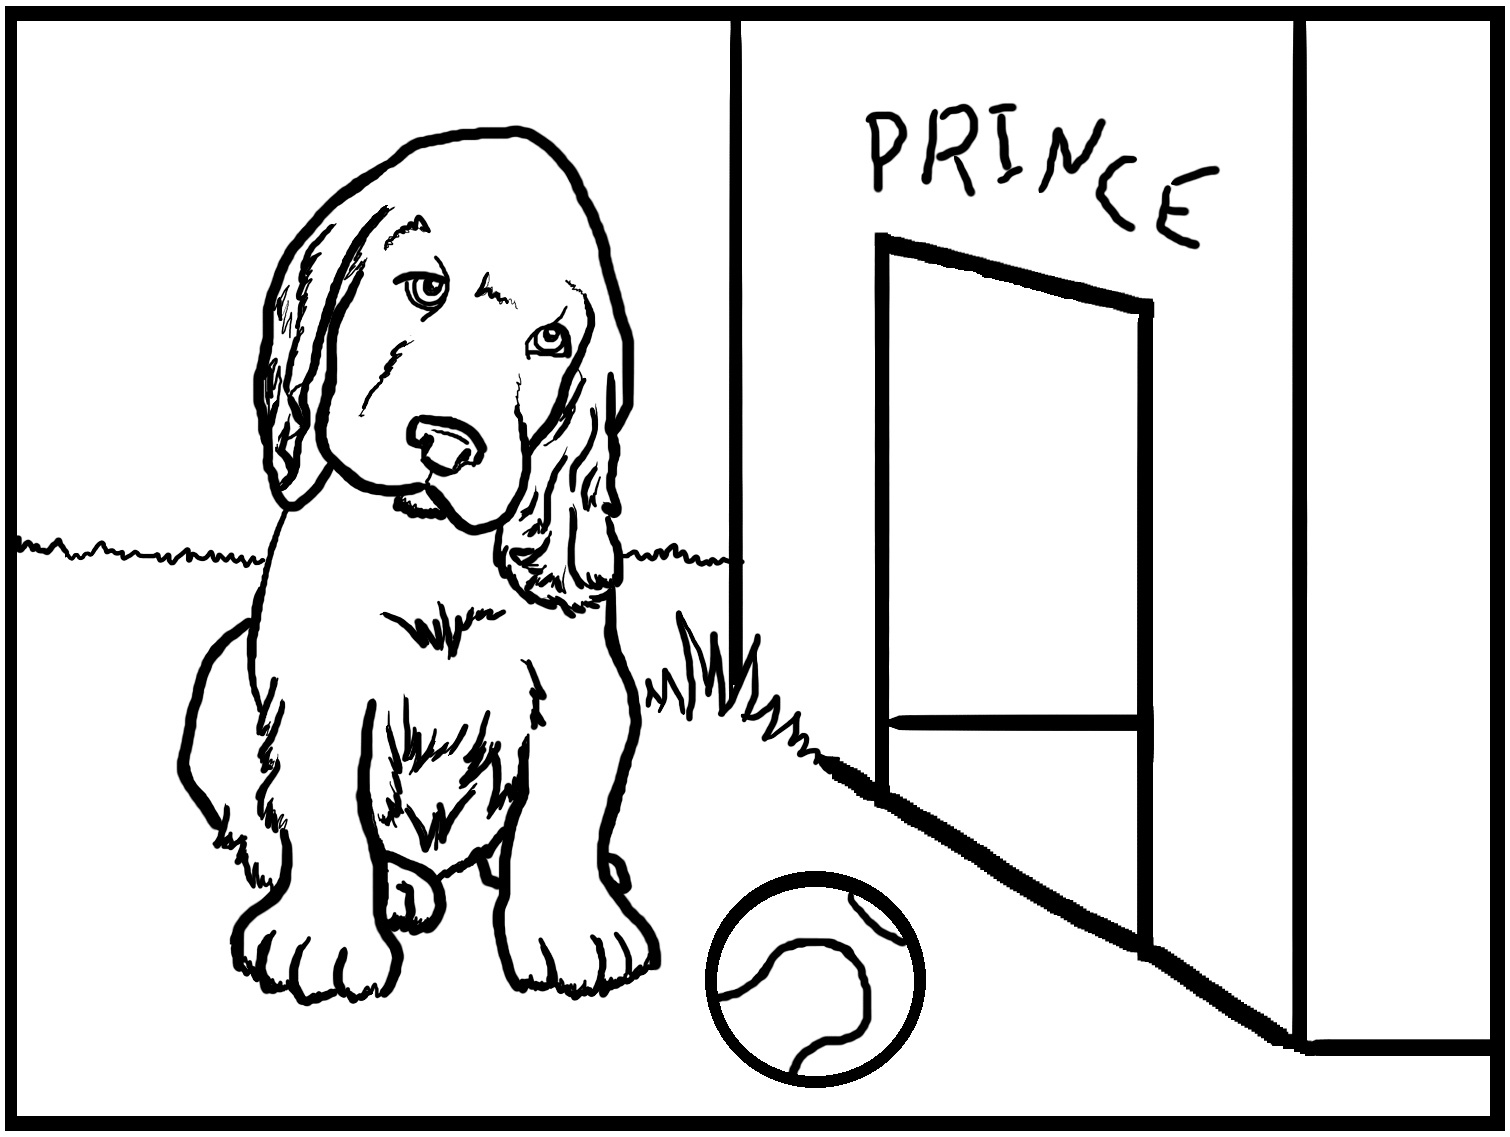 Free Printable Dog Coloring Pages For Kids - Free Printable Dog Coloring Pages